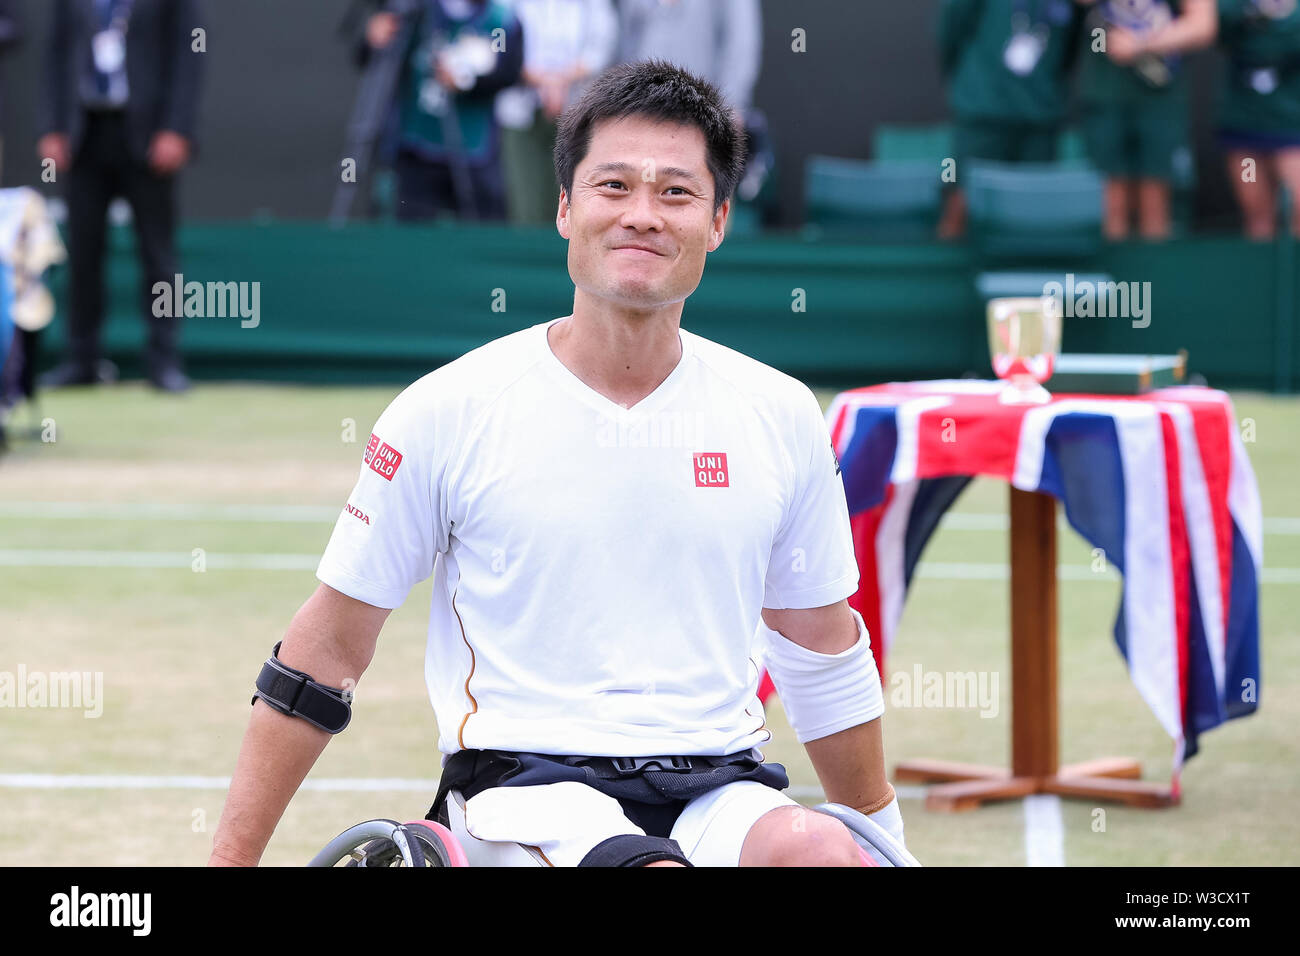 Wimbledon, London, UK. 14th July 2019. Shingo Kunieda of Japan smiles after the men's wheelchair singles final match of the Wimbledon Lawn Tennis Championships against Gustavo Fernandez of Argentina at the All England Lawn Tennis and Croquet Club in London, England on July 14, 2019. Credit: AFLO/Alamy Live News - Stock Image